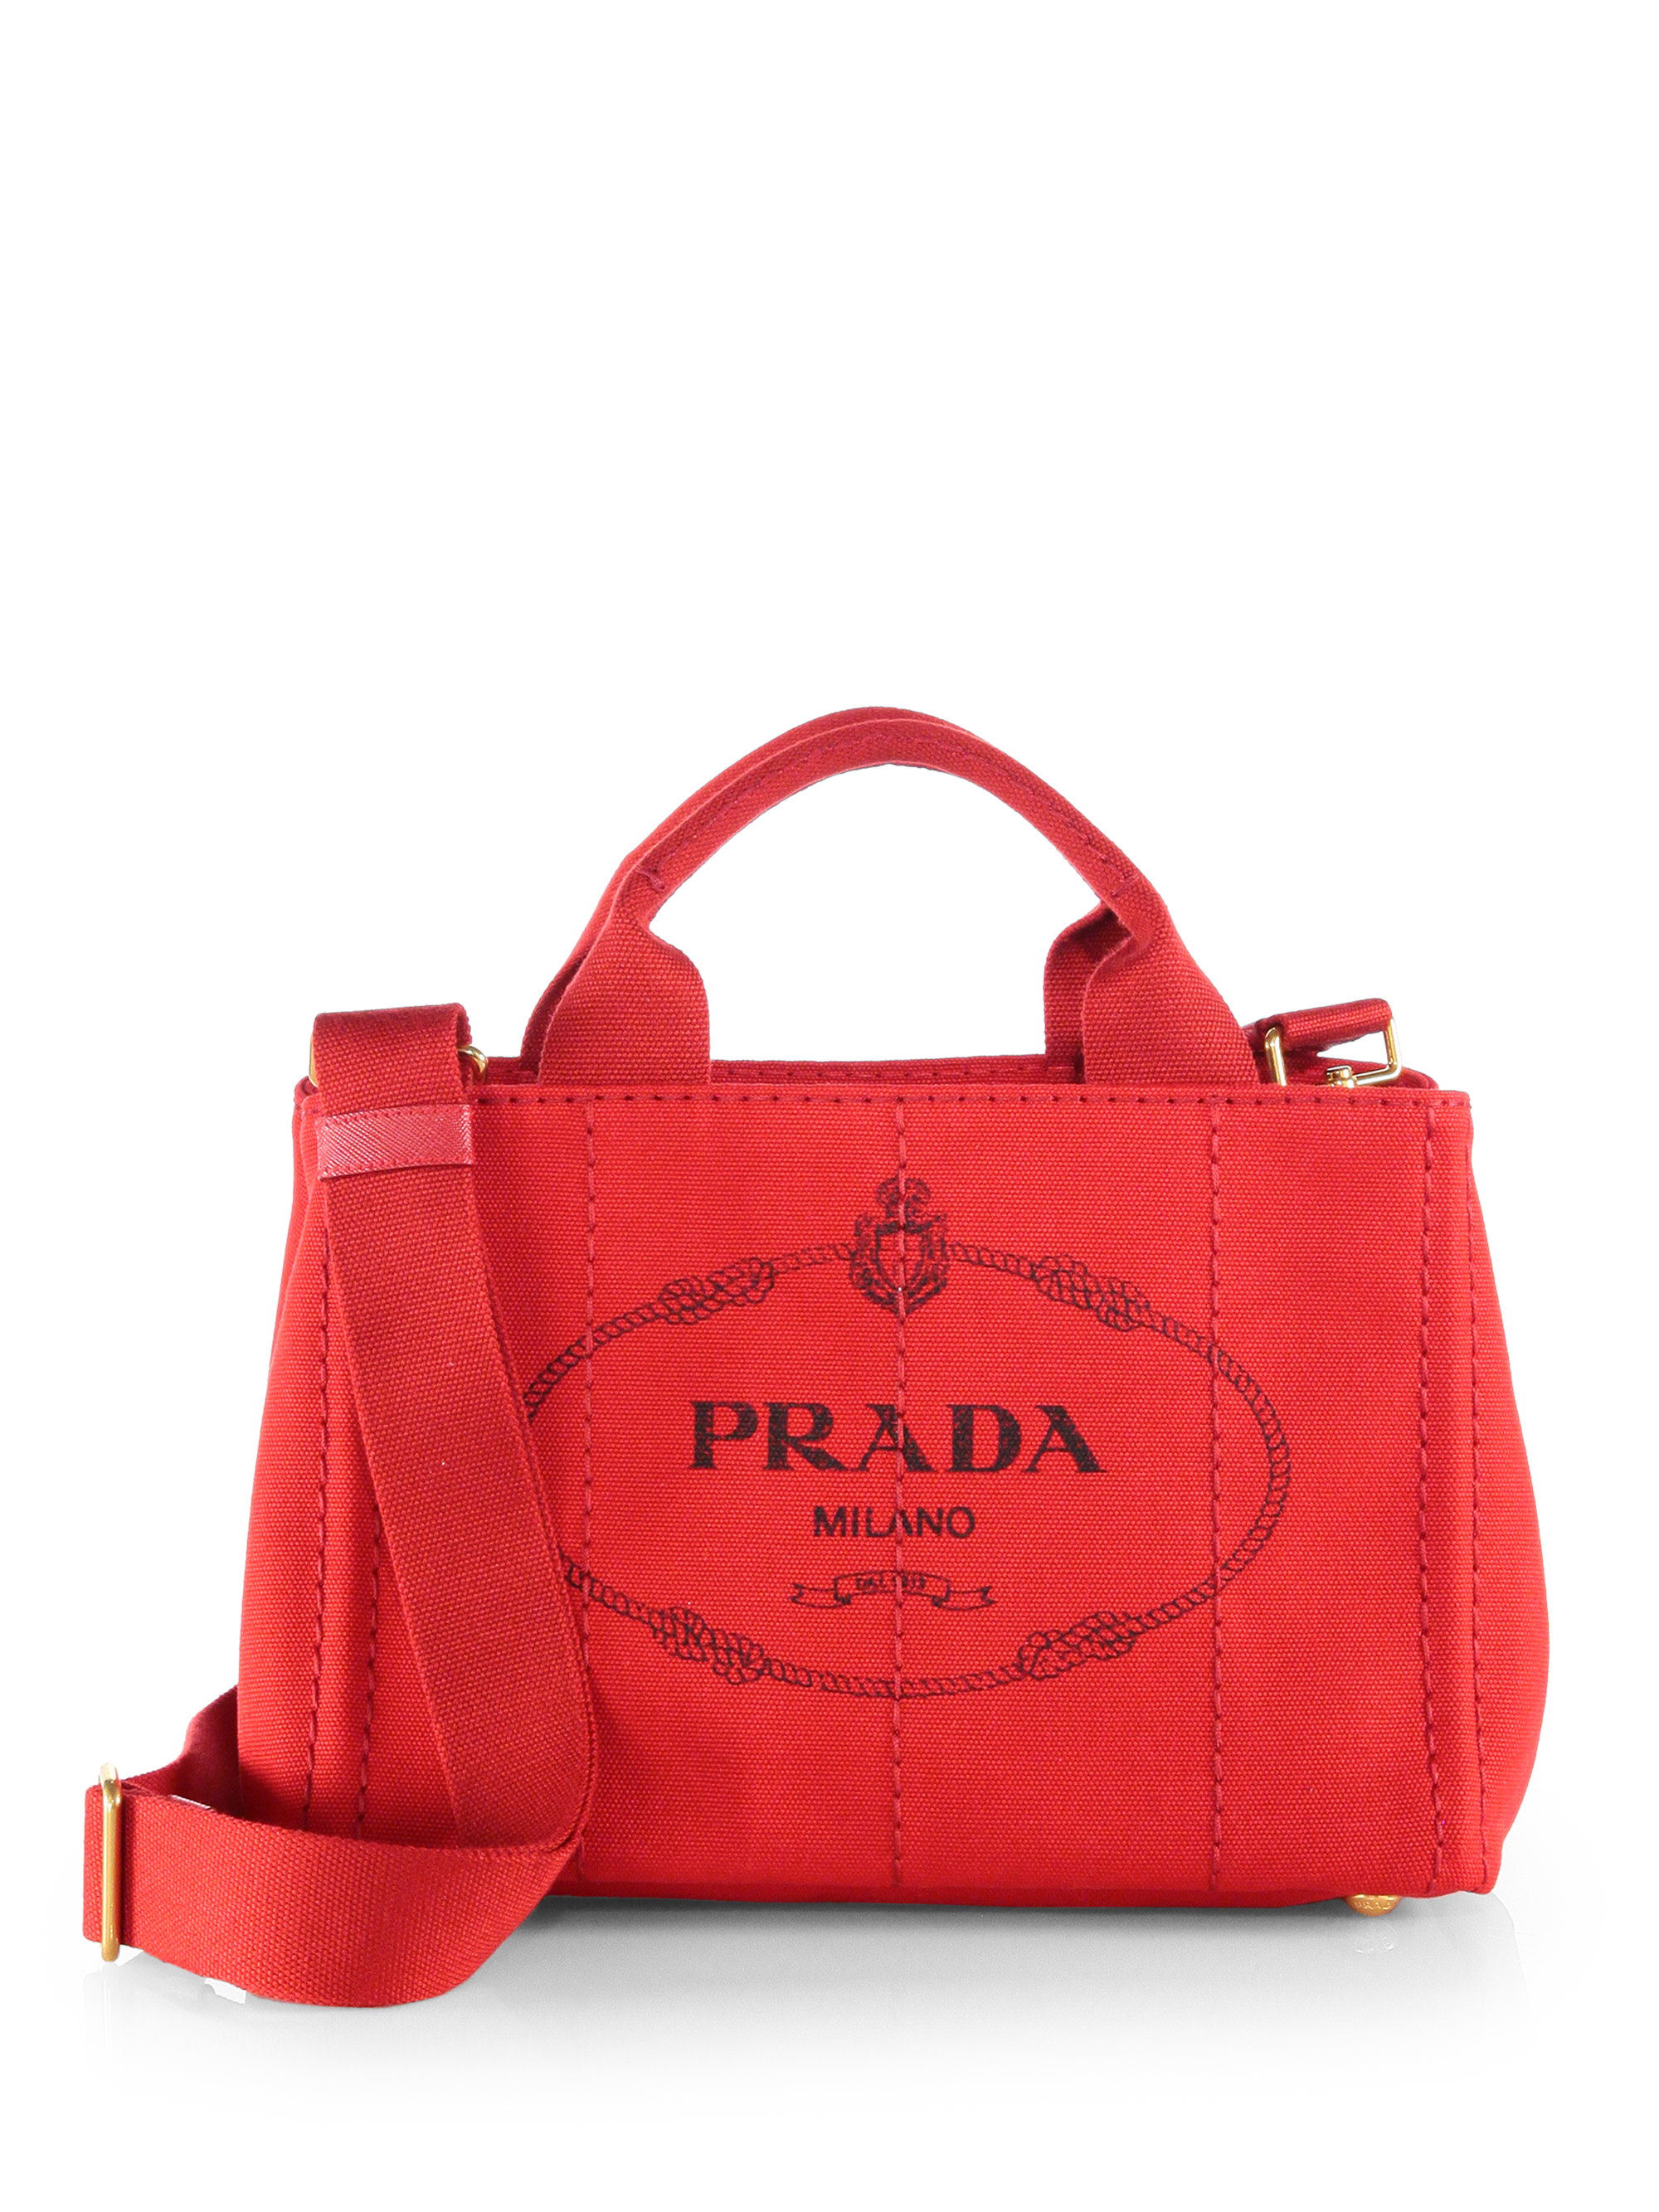 prada clutches on sale - Prada Logo-print Small Canvas Tote in Red | Lyst